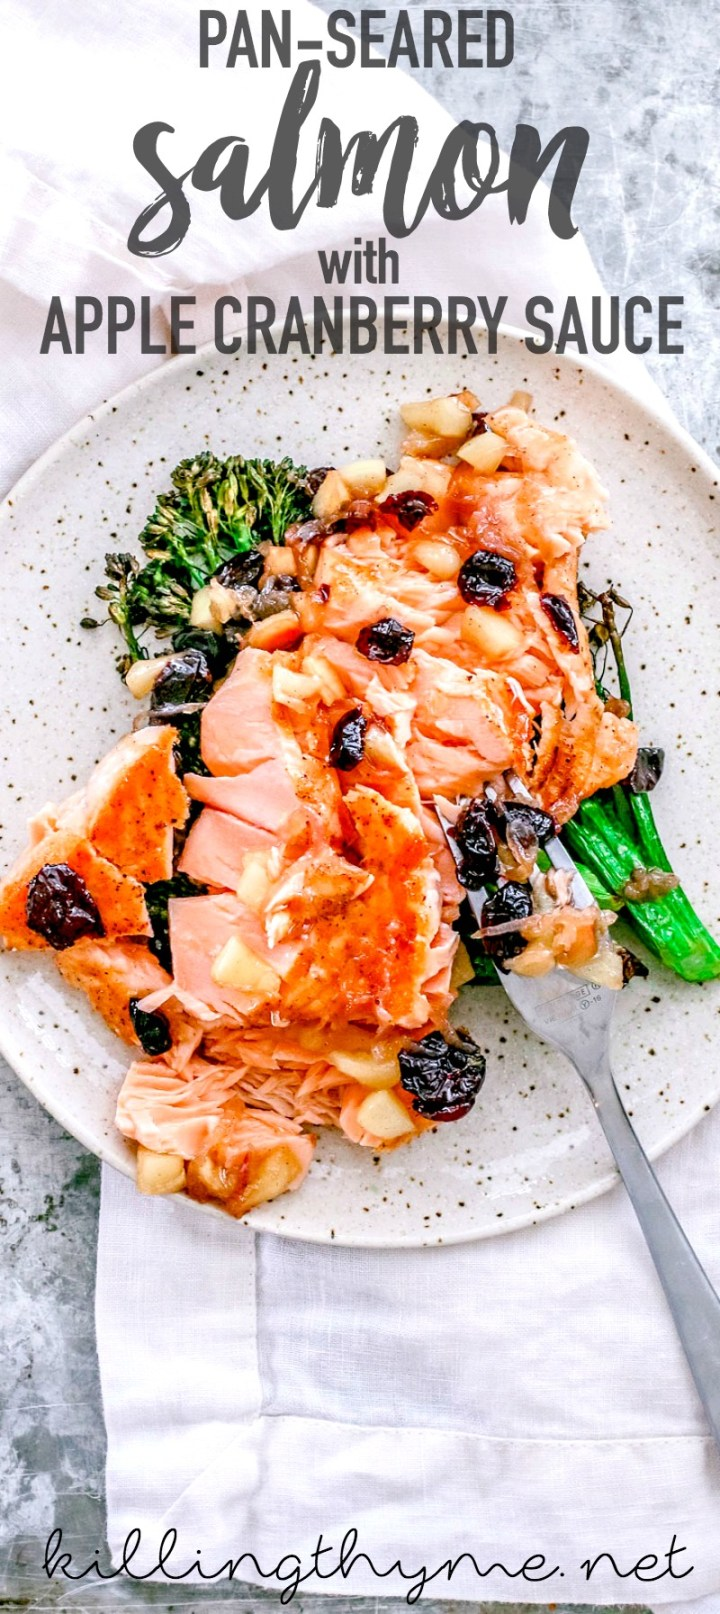 Pan-Seared Salmon With Apple Cranberry Sauce | Killing Thyme